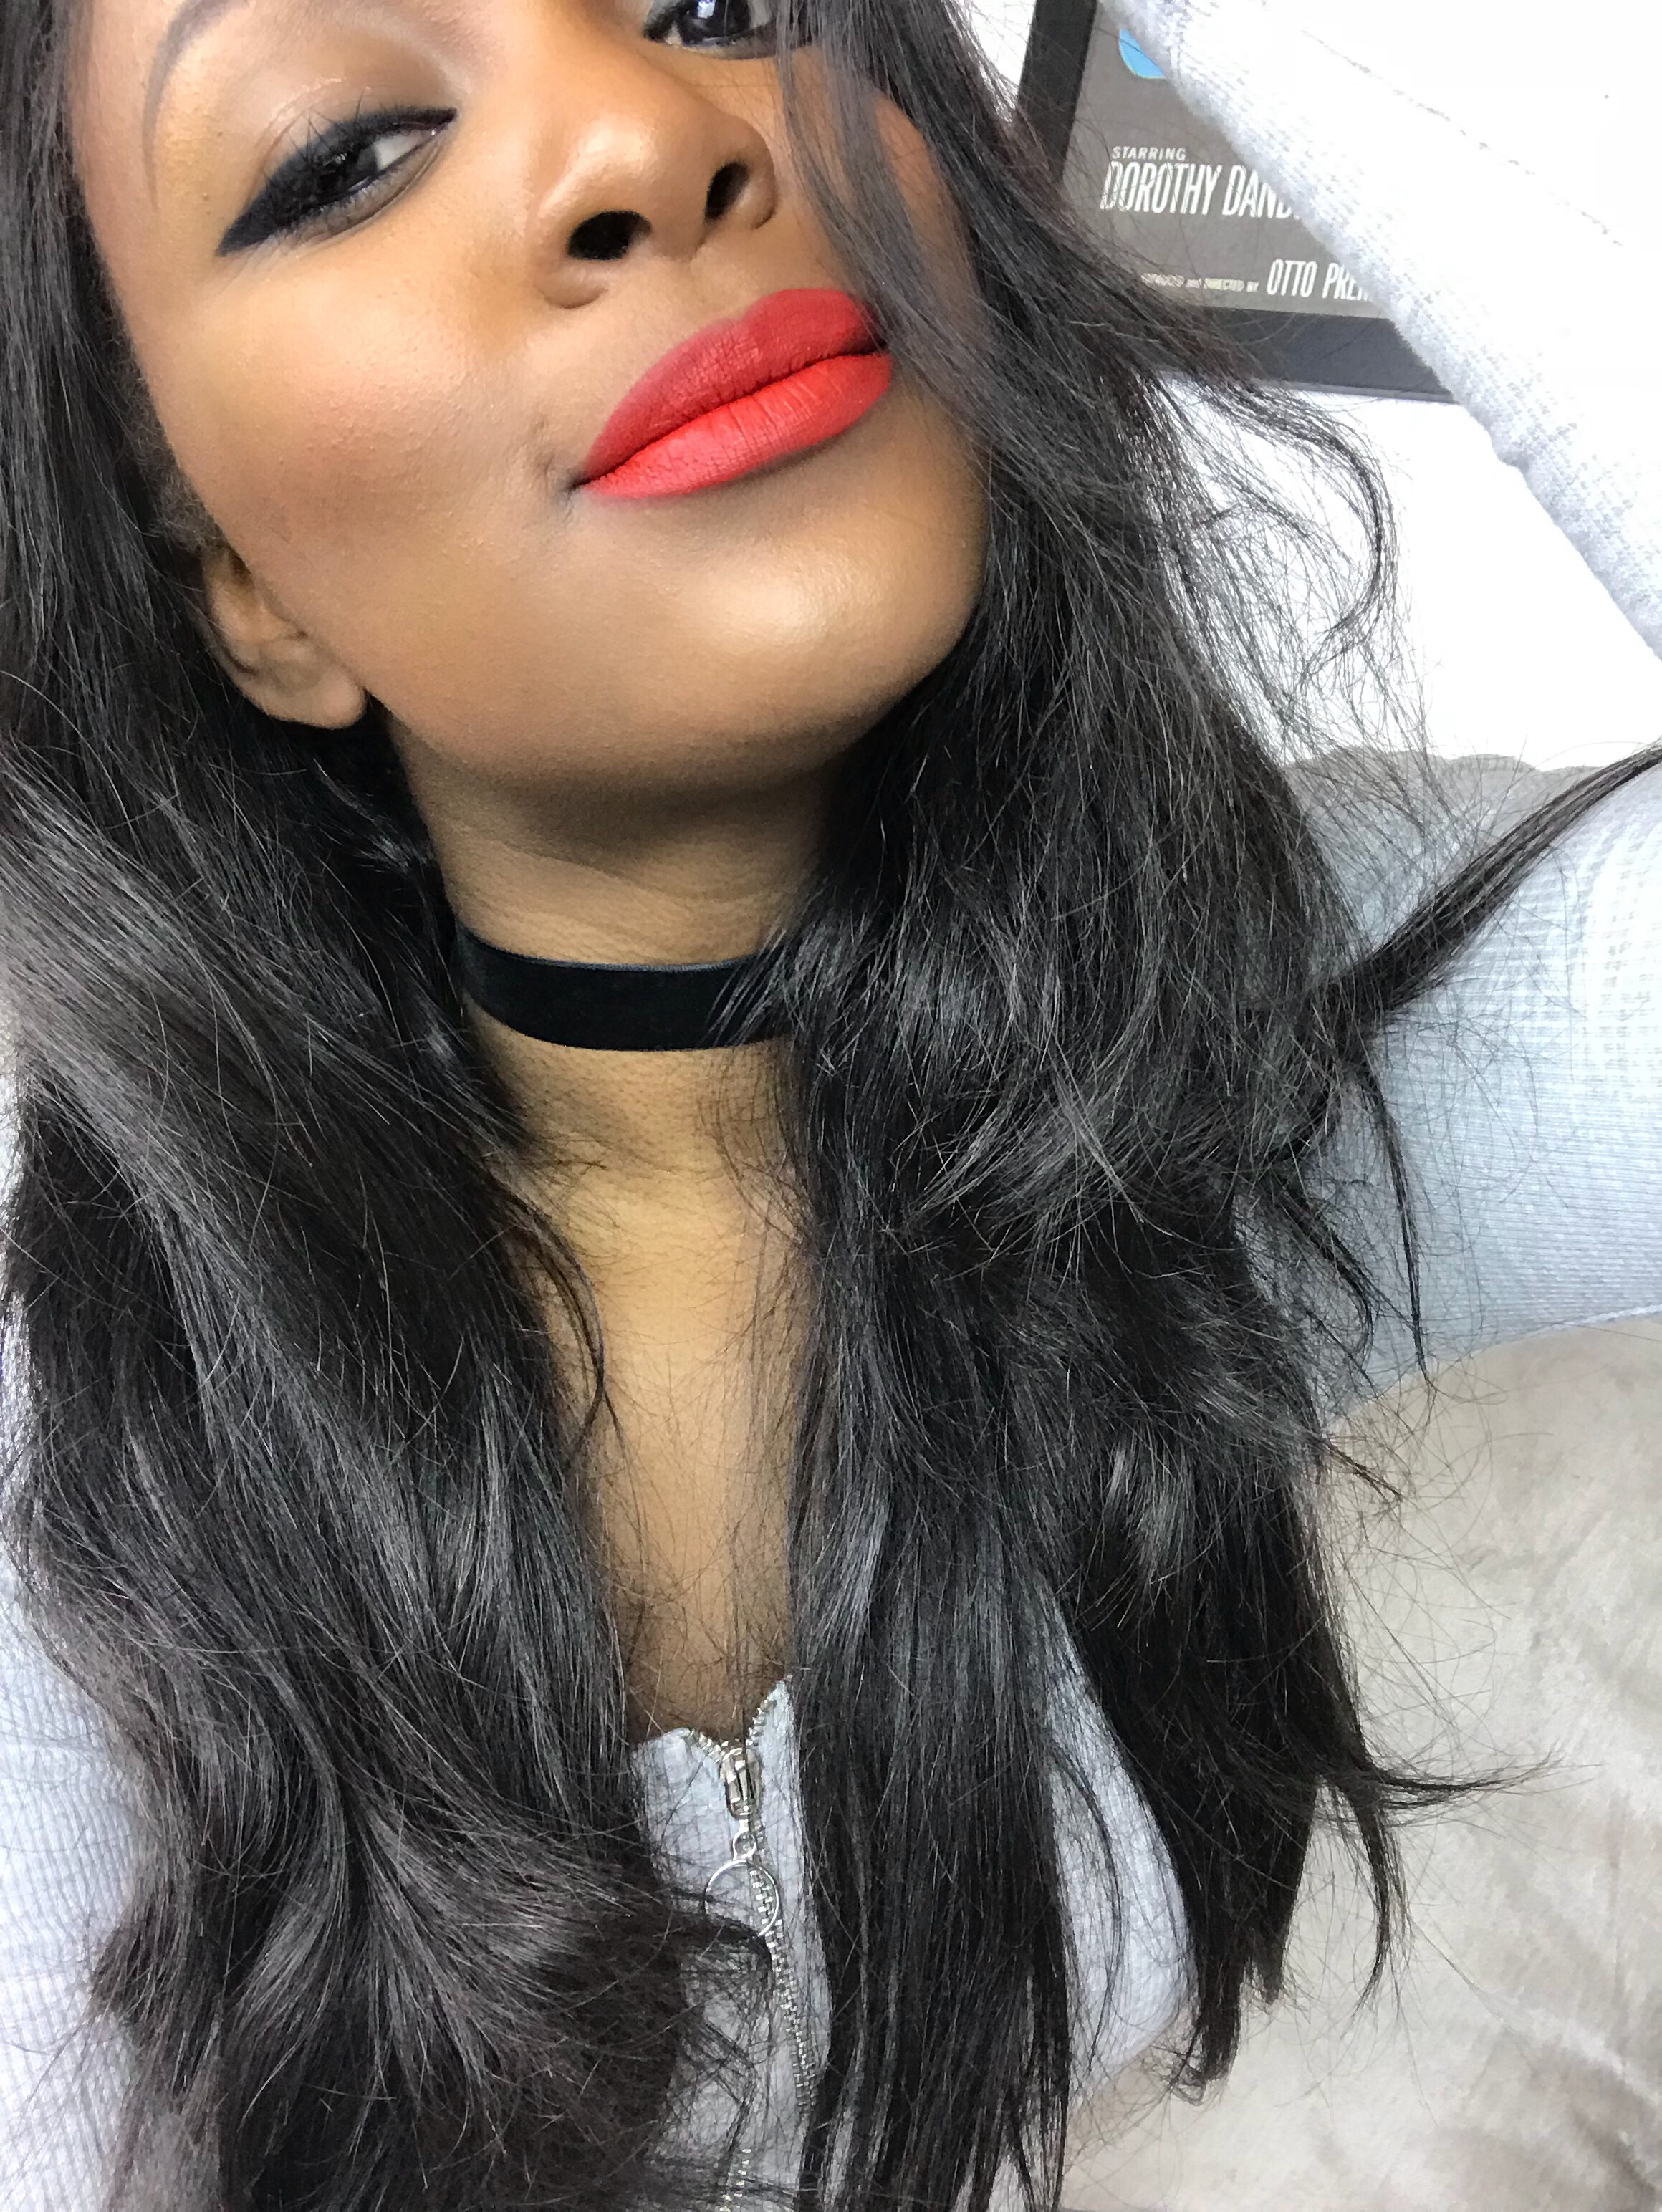 raychel-says-red-lips-uncensored-stunna-lip-paint-fenty-beauty-grey-top-black-hair